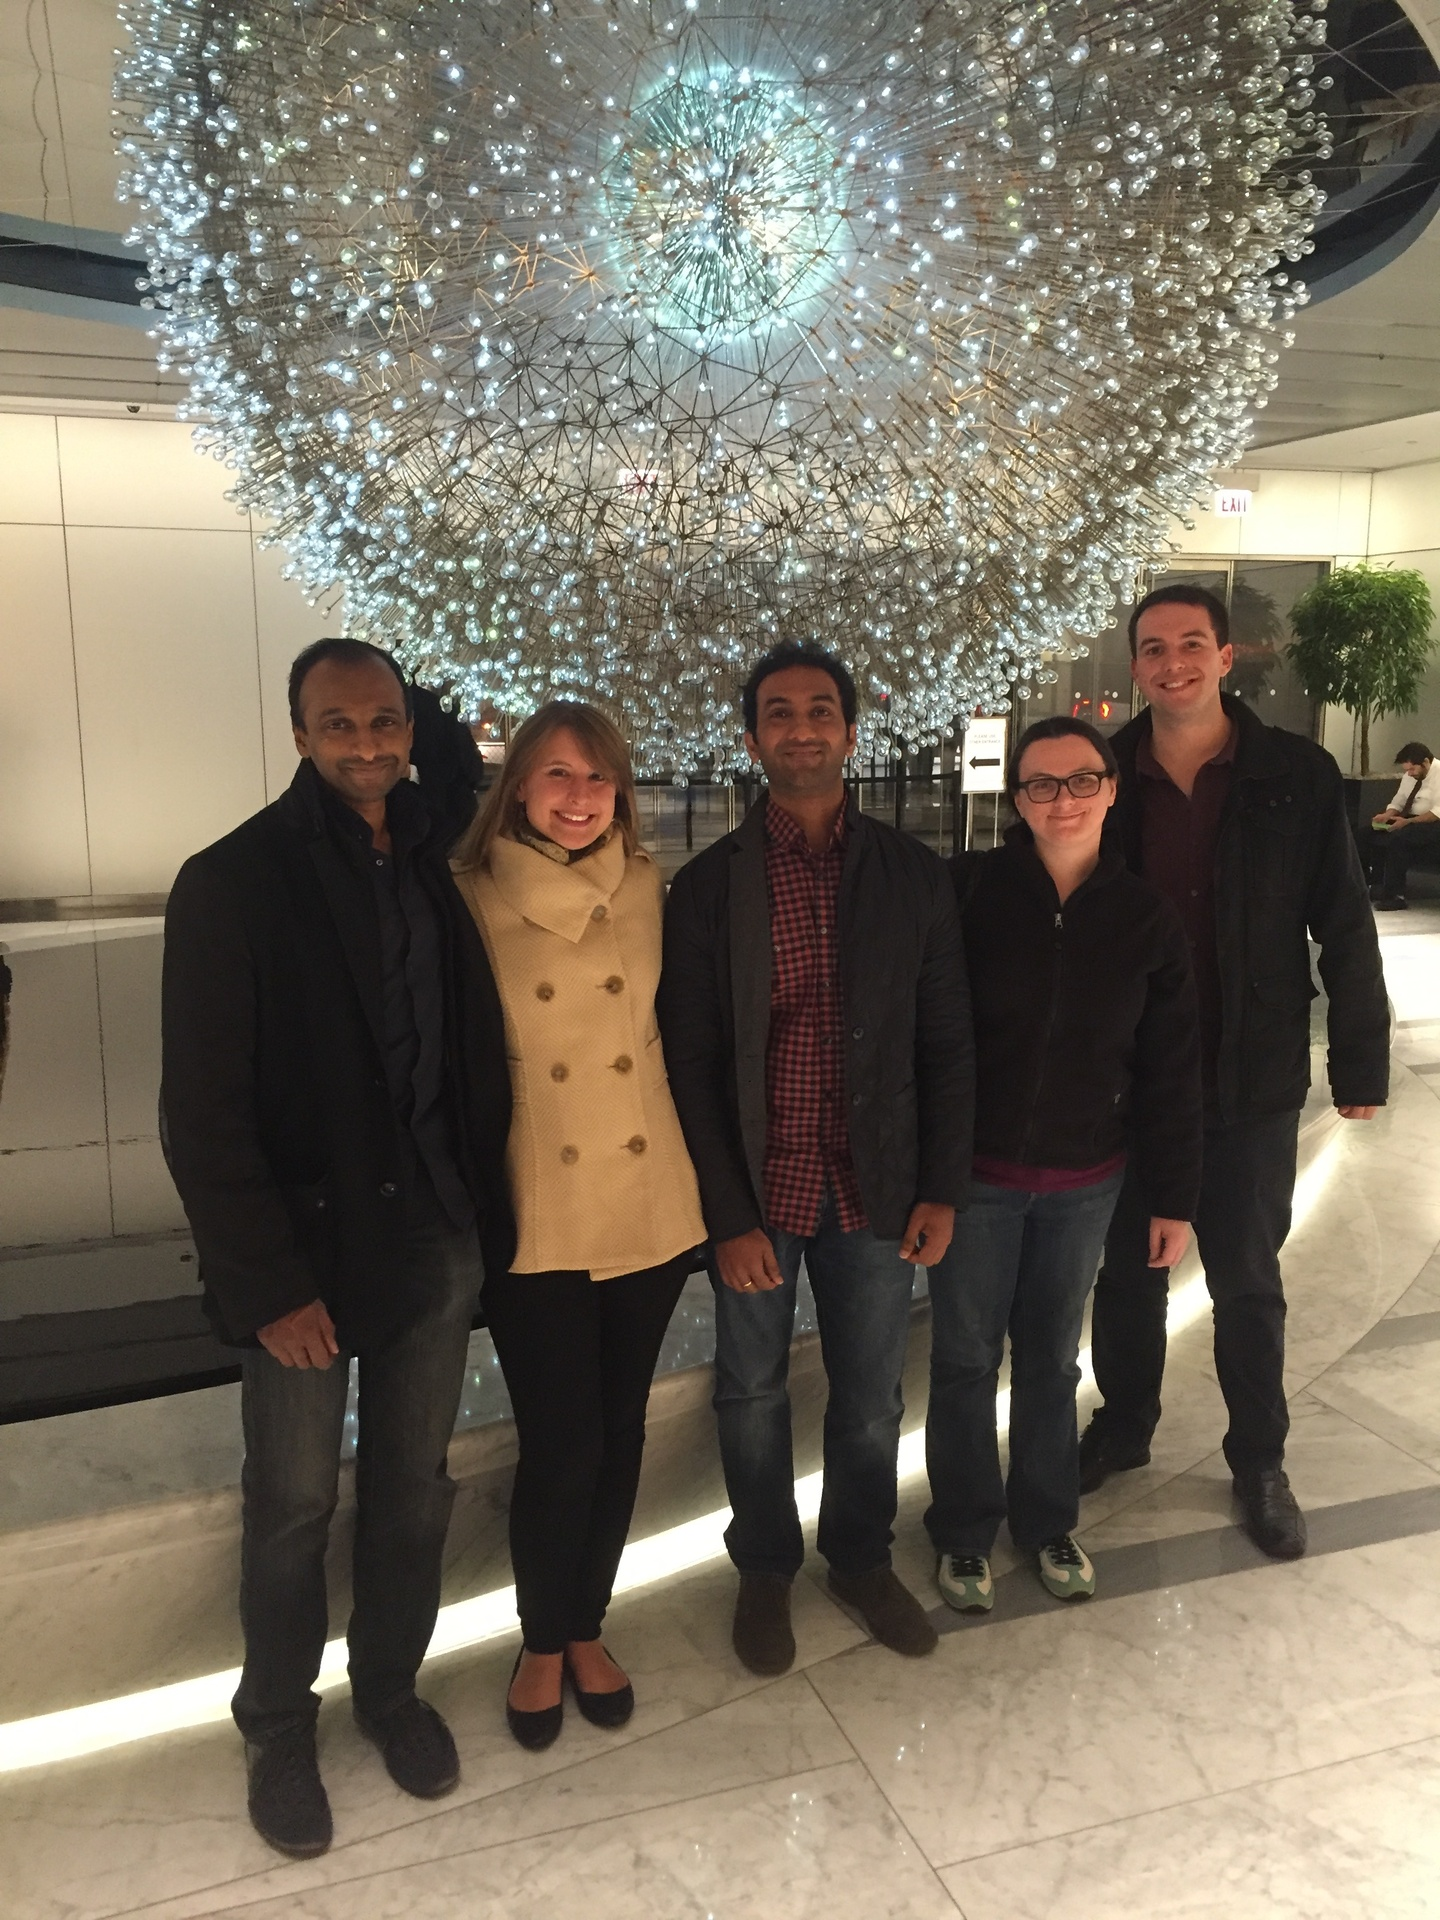 Catching up with friends (10th Brain Research 2015 Conference/SFN)